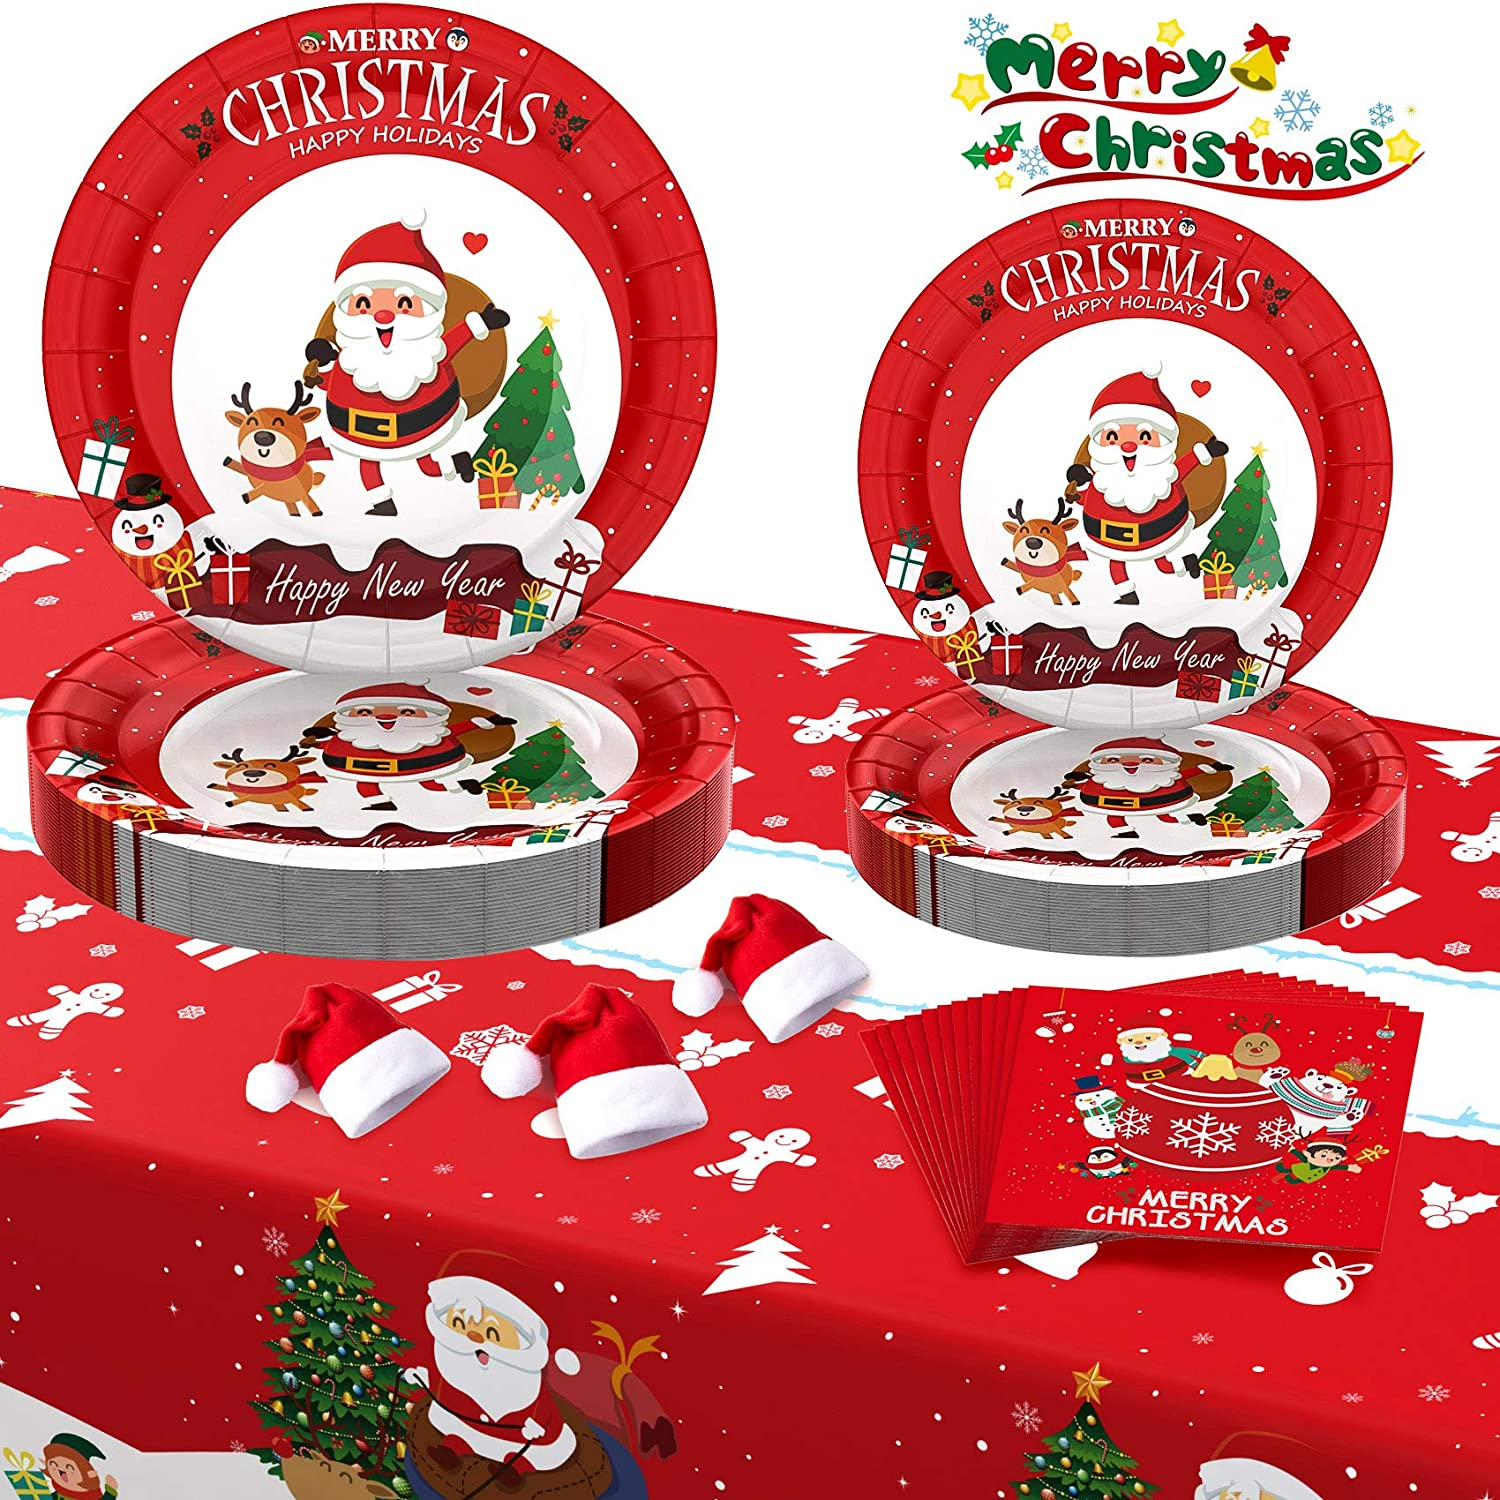 30 Red Christmas Paper Plates | Santa Paper Plates - 30 9'' Dinner Plates 30 7'' Dessert Plates 30 Napkins 1 Table Cover and 30 Mini Christmas wine bottle Hats for Holiday Party Disposable Dinnerware Set